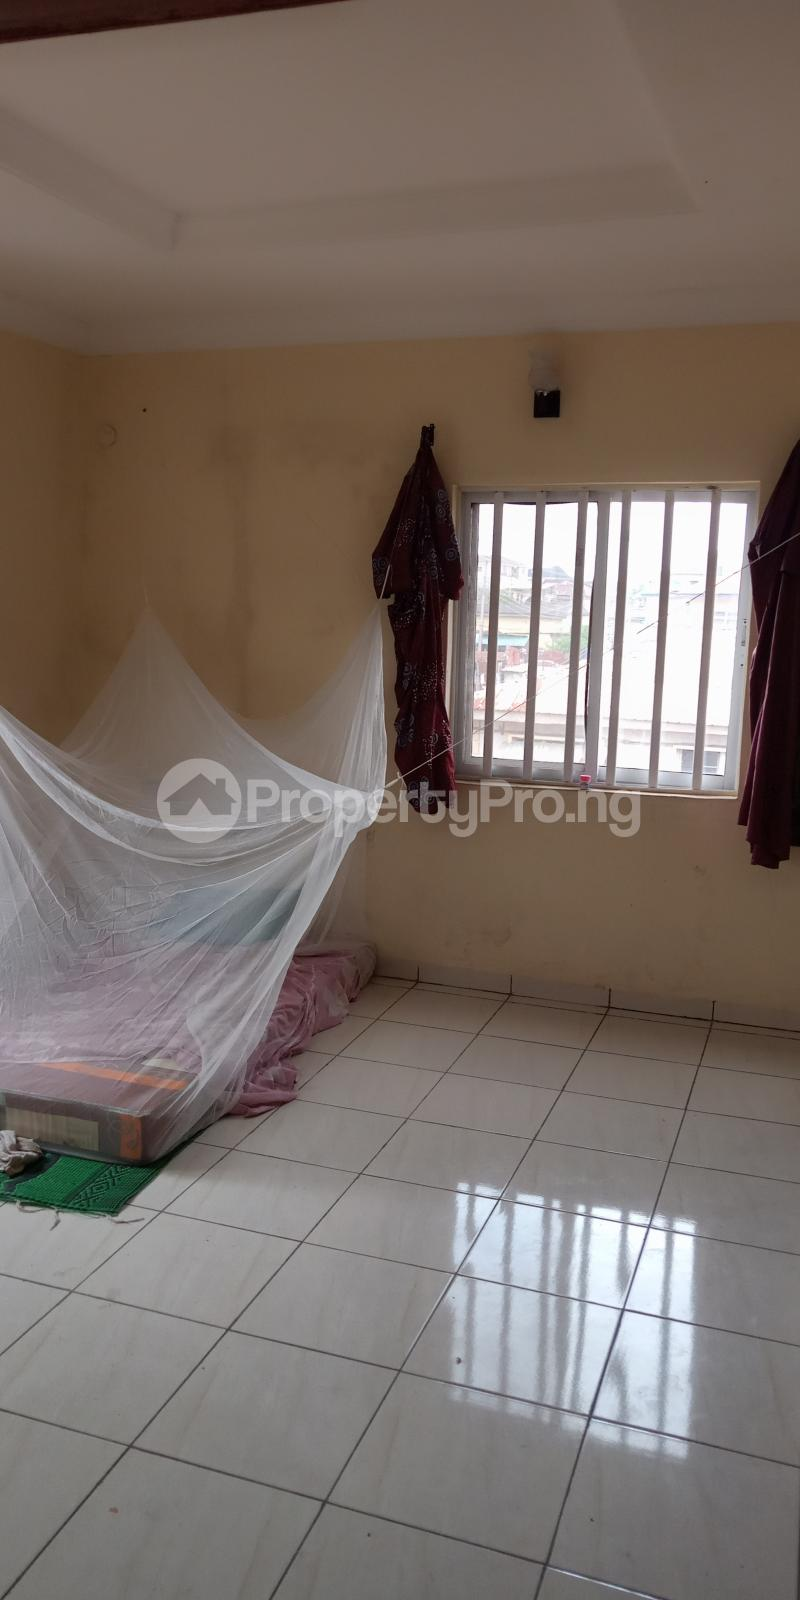 3 bedroom Flat / Apartment for rent Alagomeji Alagomeji Yaba Lagos - 6